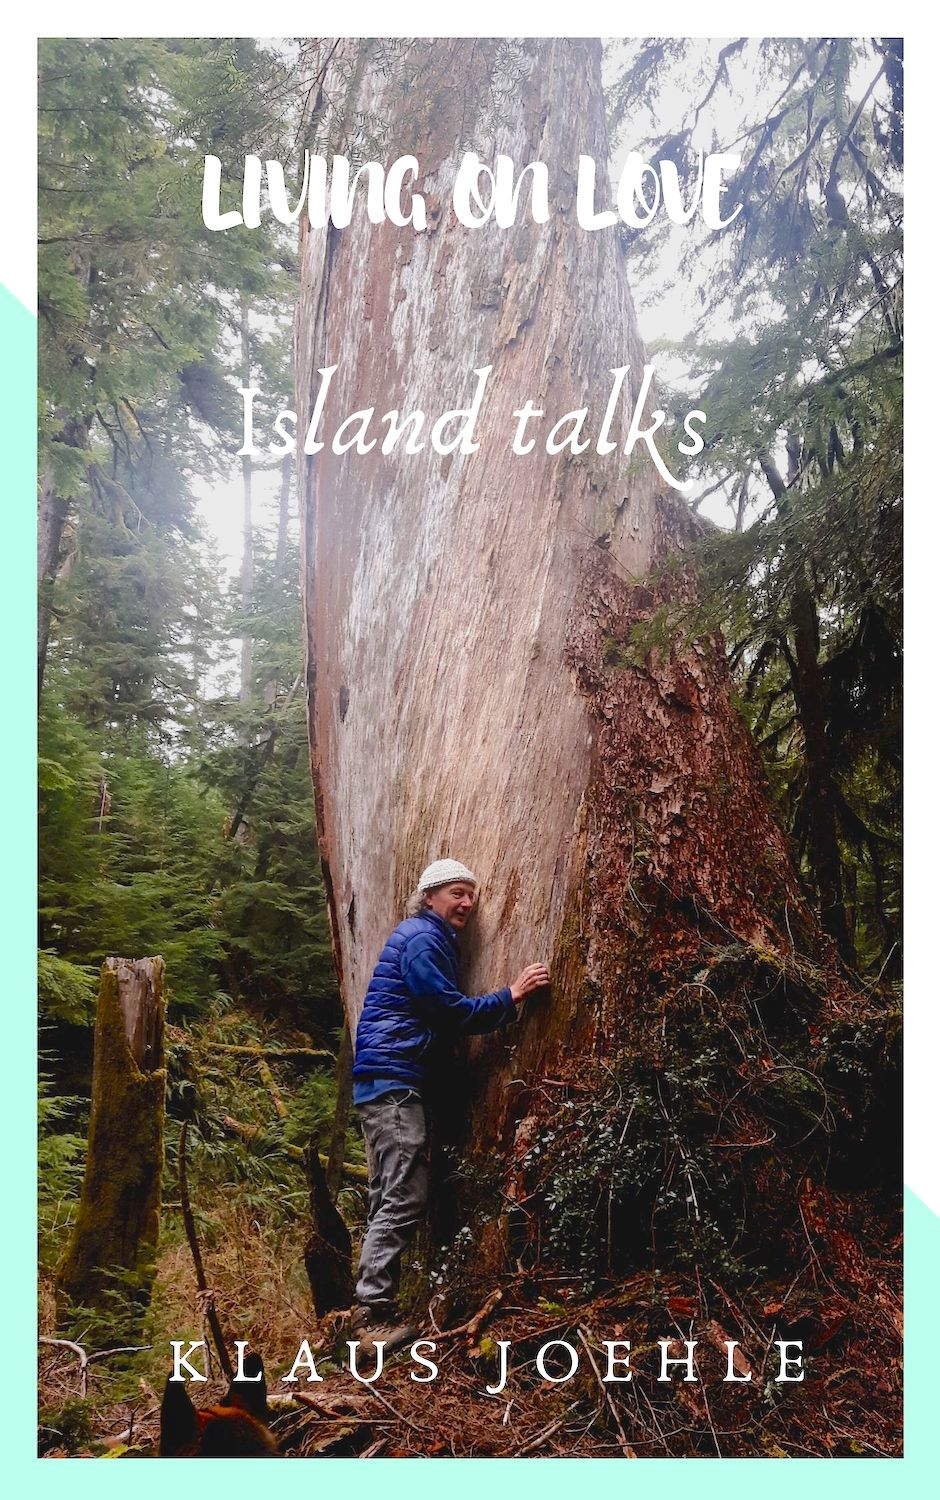 ISLAND TALKS Klaus Joehle author, Living on Love